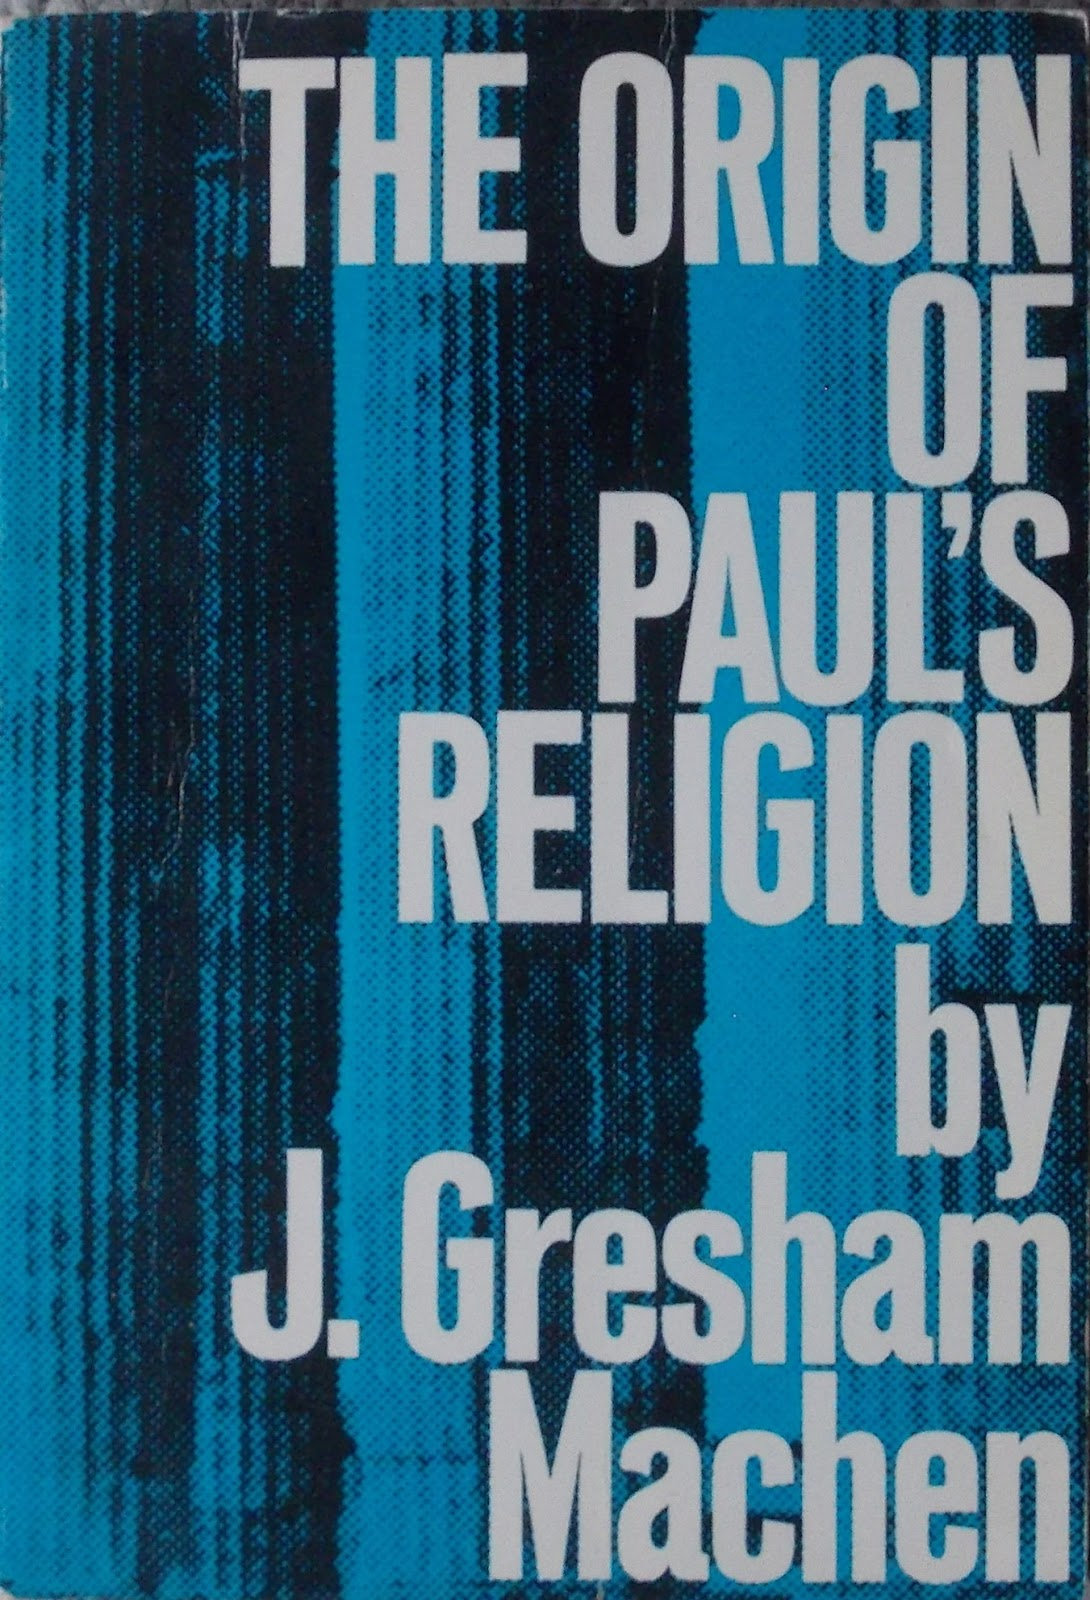 J. Gresham Machen-The Origin Of Paul's Religion-